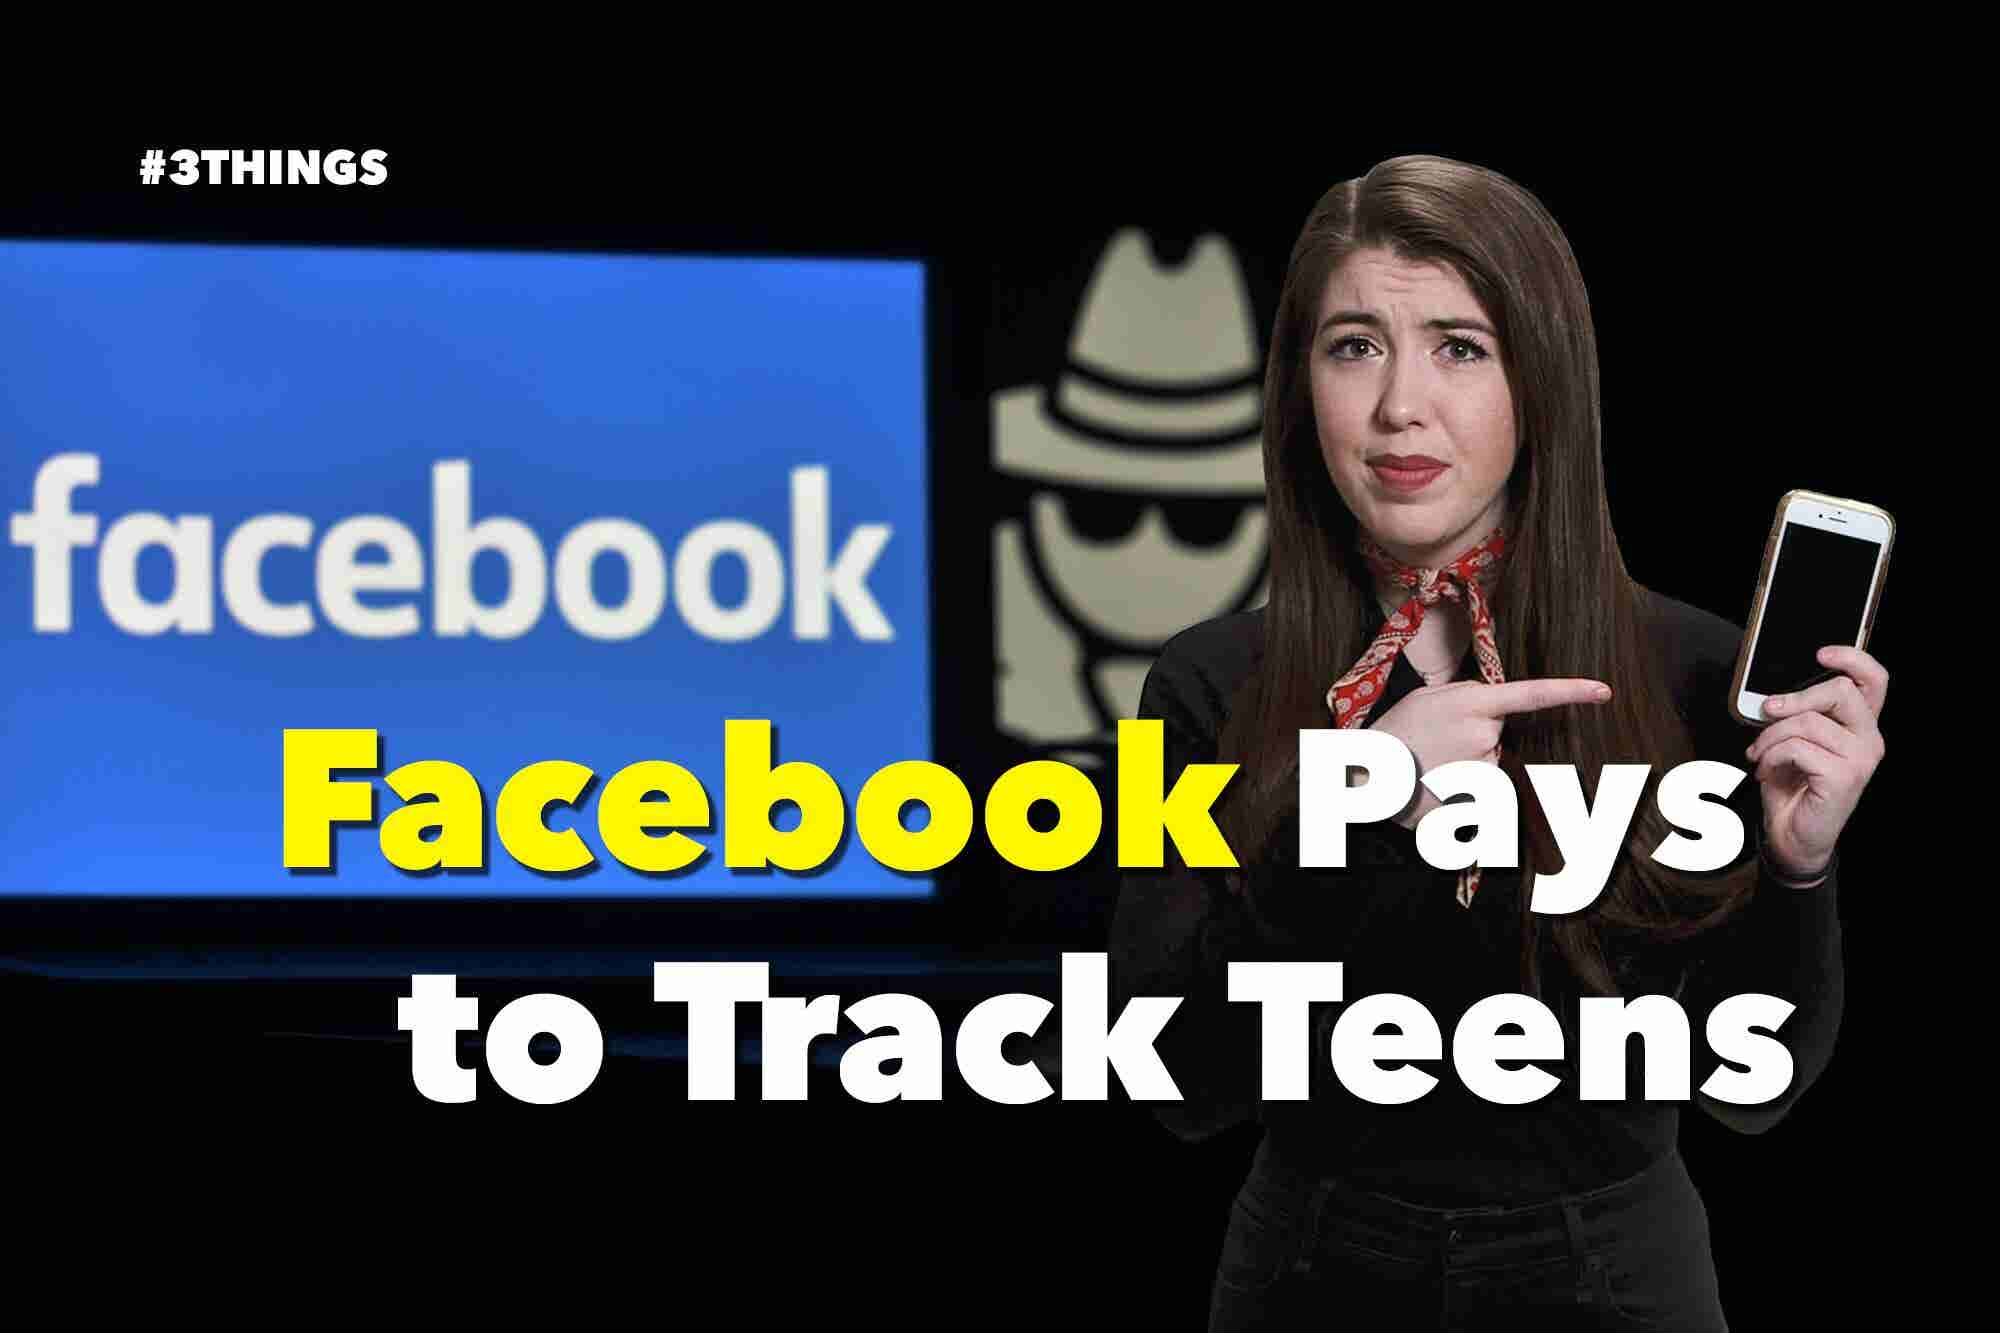 Facebook Pays to Track People, Cryptocurrency Scams Cost Users $1.7 Bi...